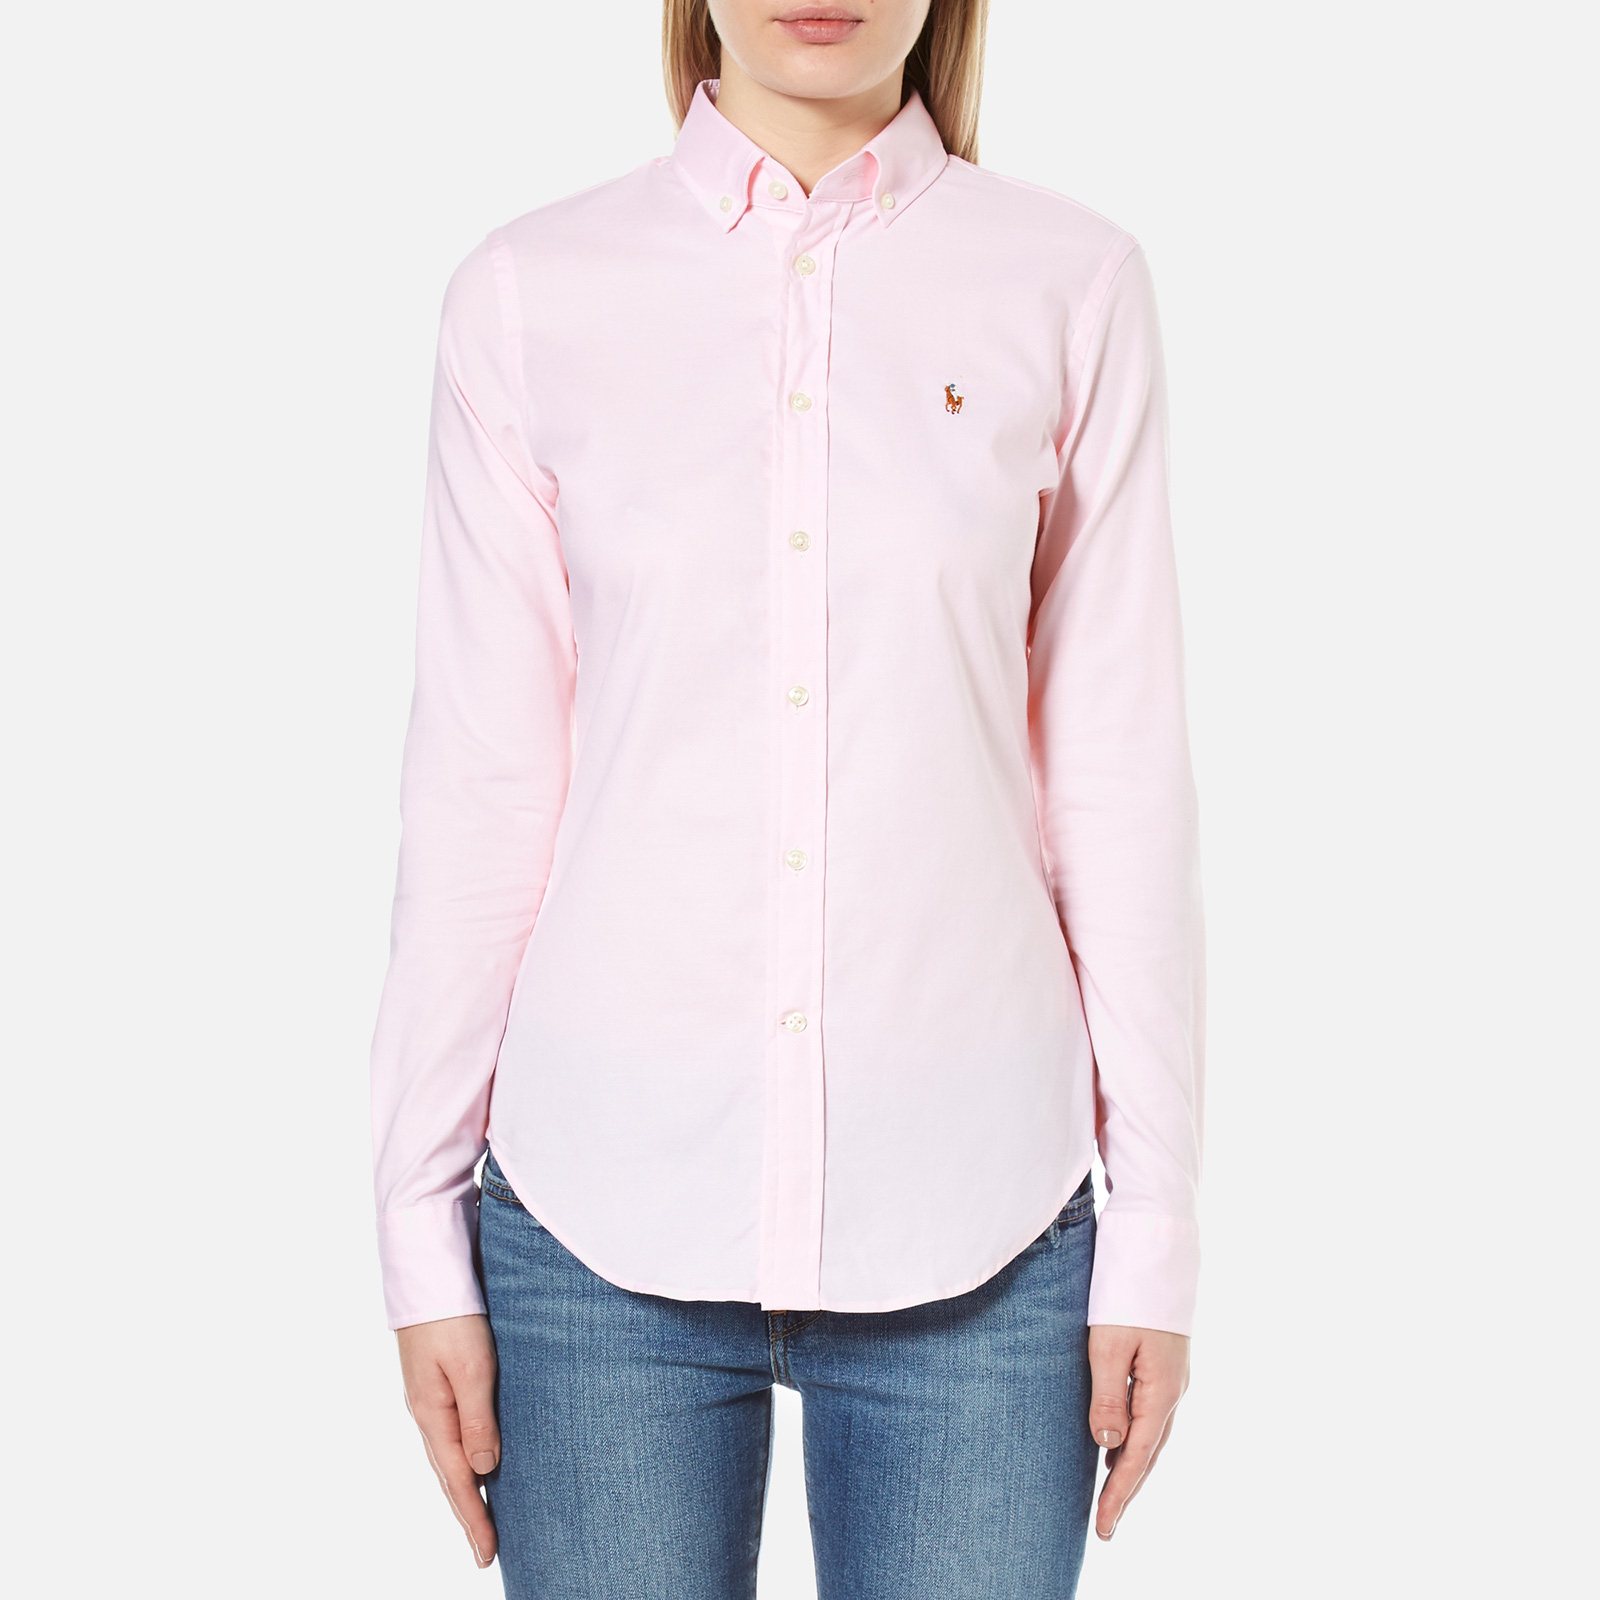 53d020478 Polo Ralph Lauren Women s Kendal Oxford Shirt - Light Rose - Free UK  Delivery over £50